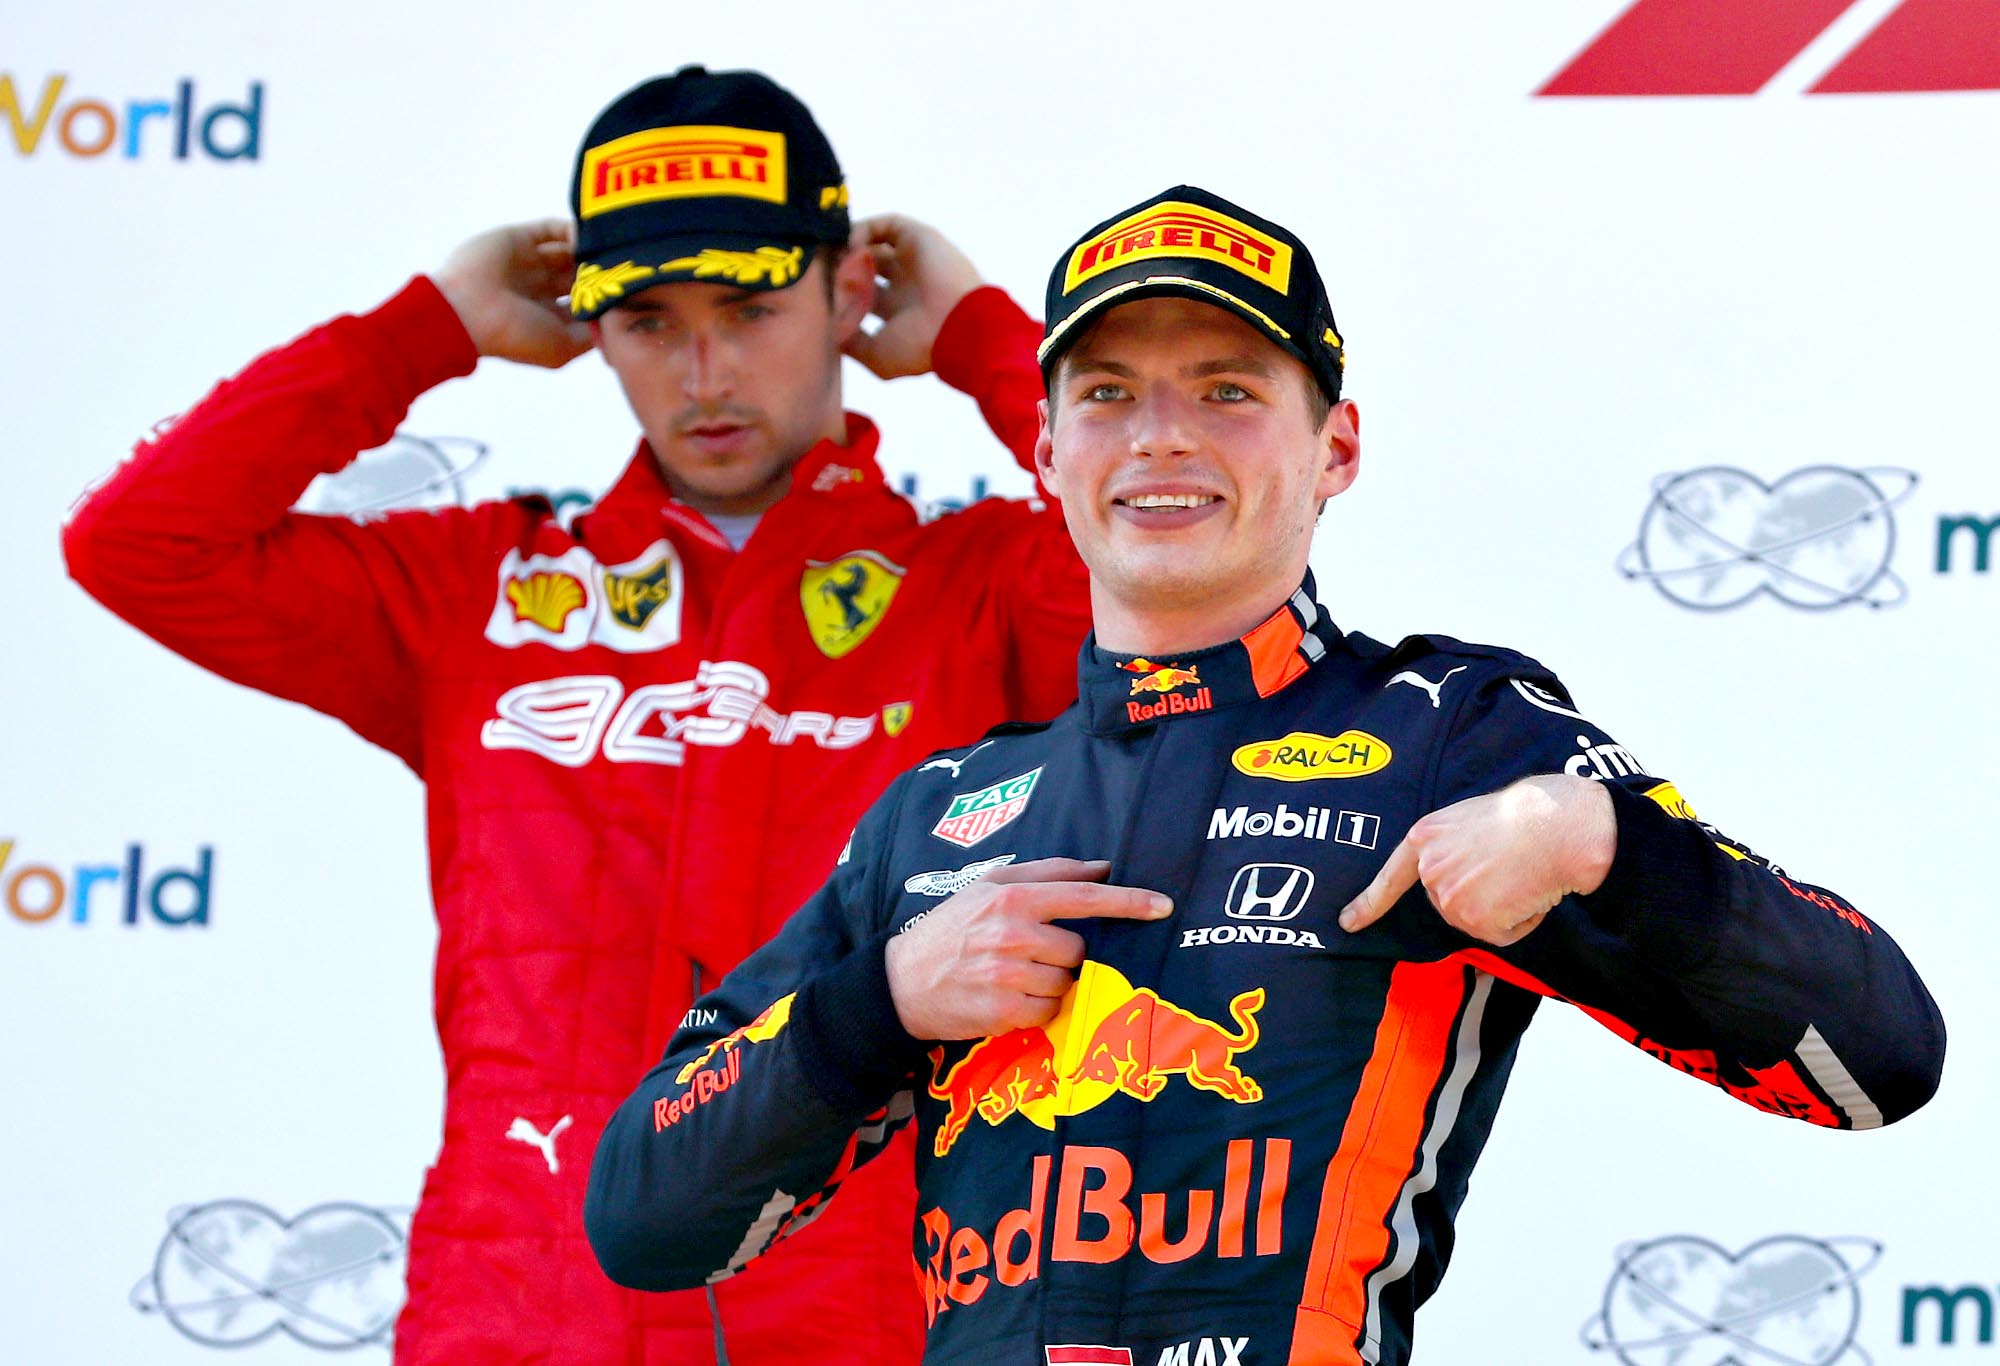 Max Verstappen points to the Honda logo on his overalls from the Austrian GP podium.